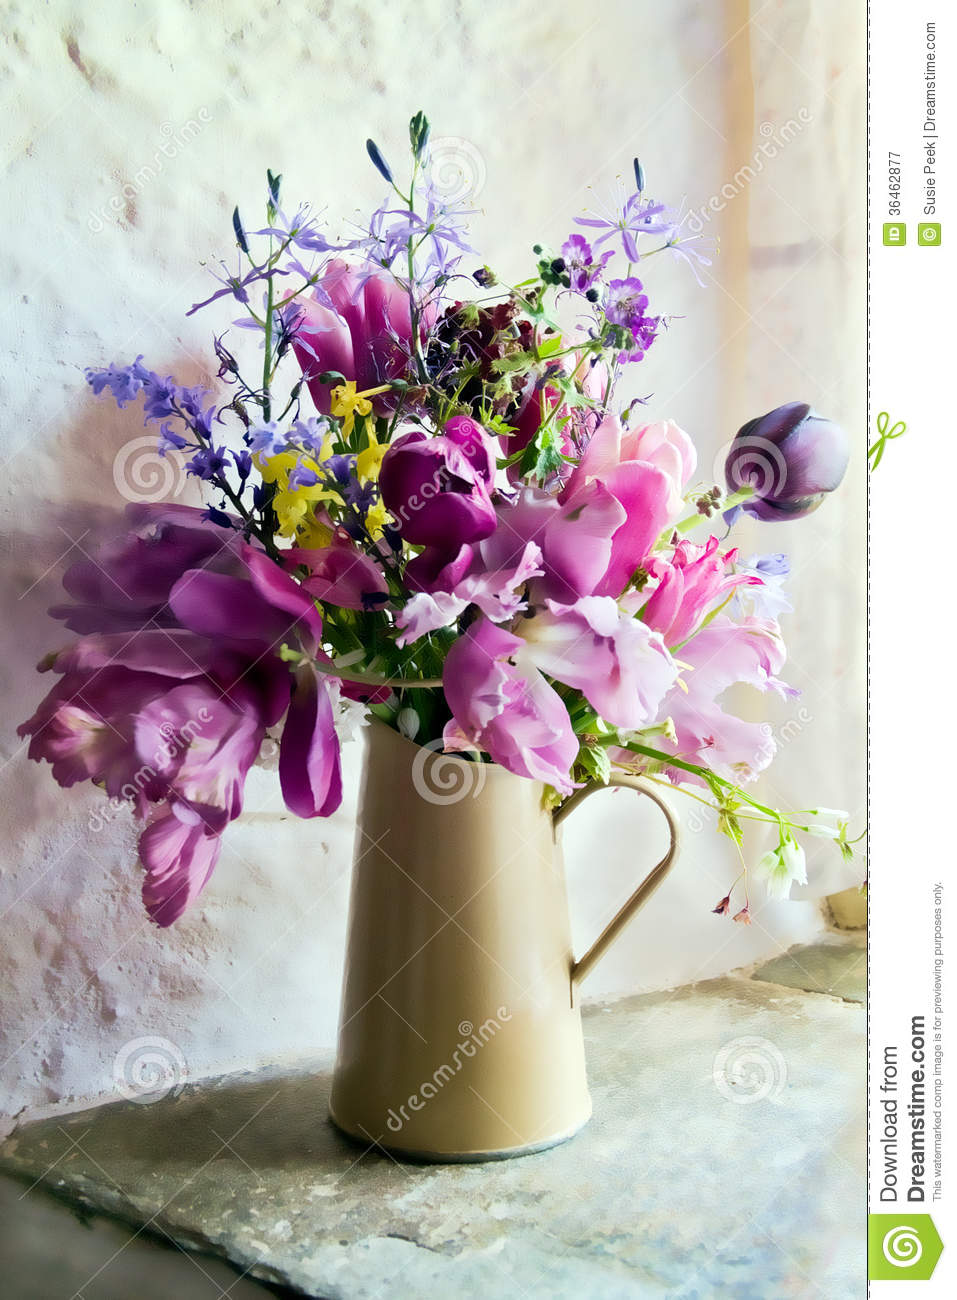 Flowers In The Window Royalty Free Stock Photography